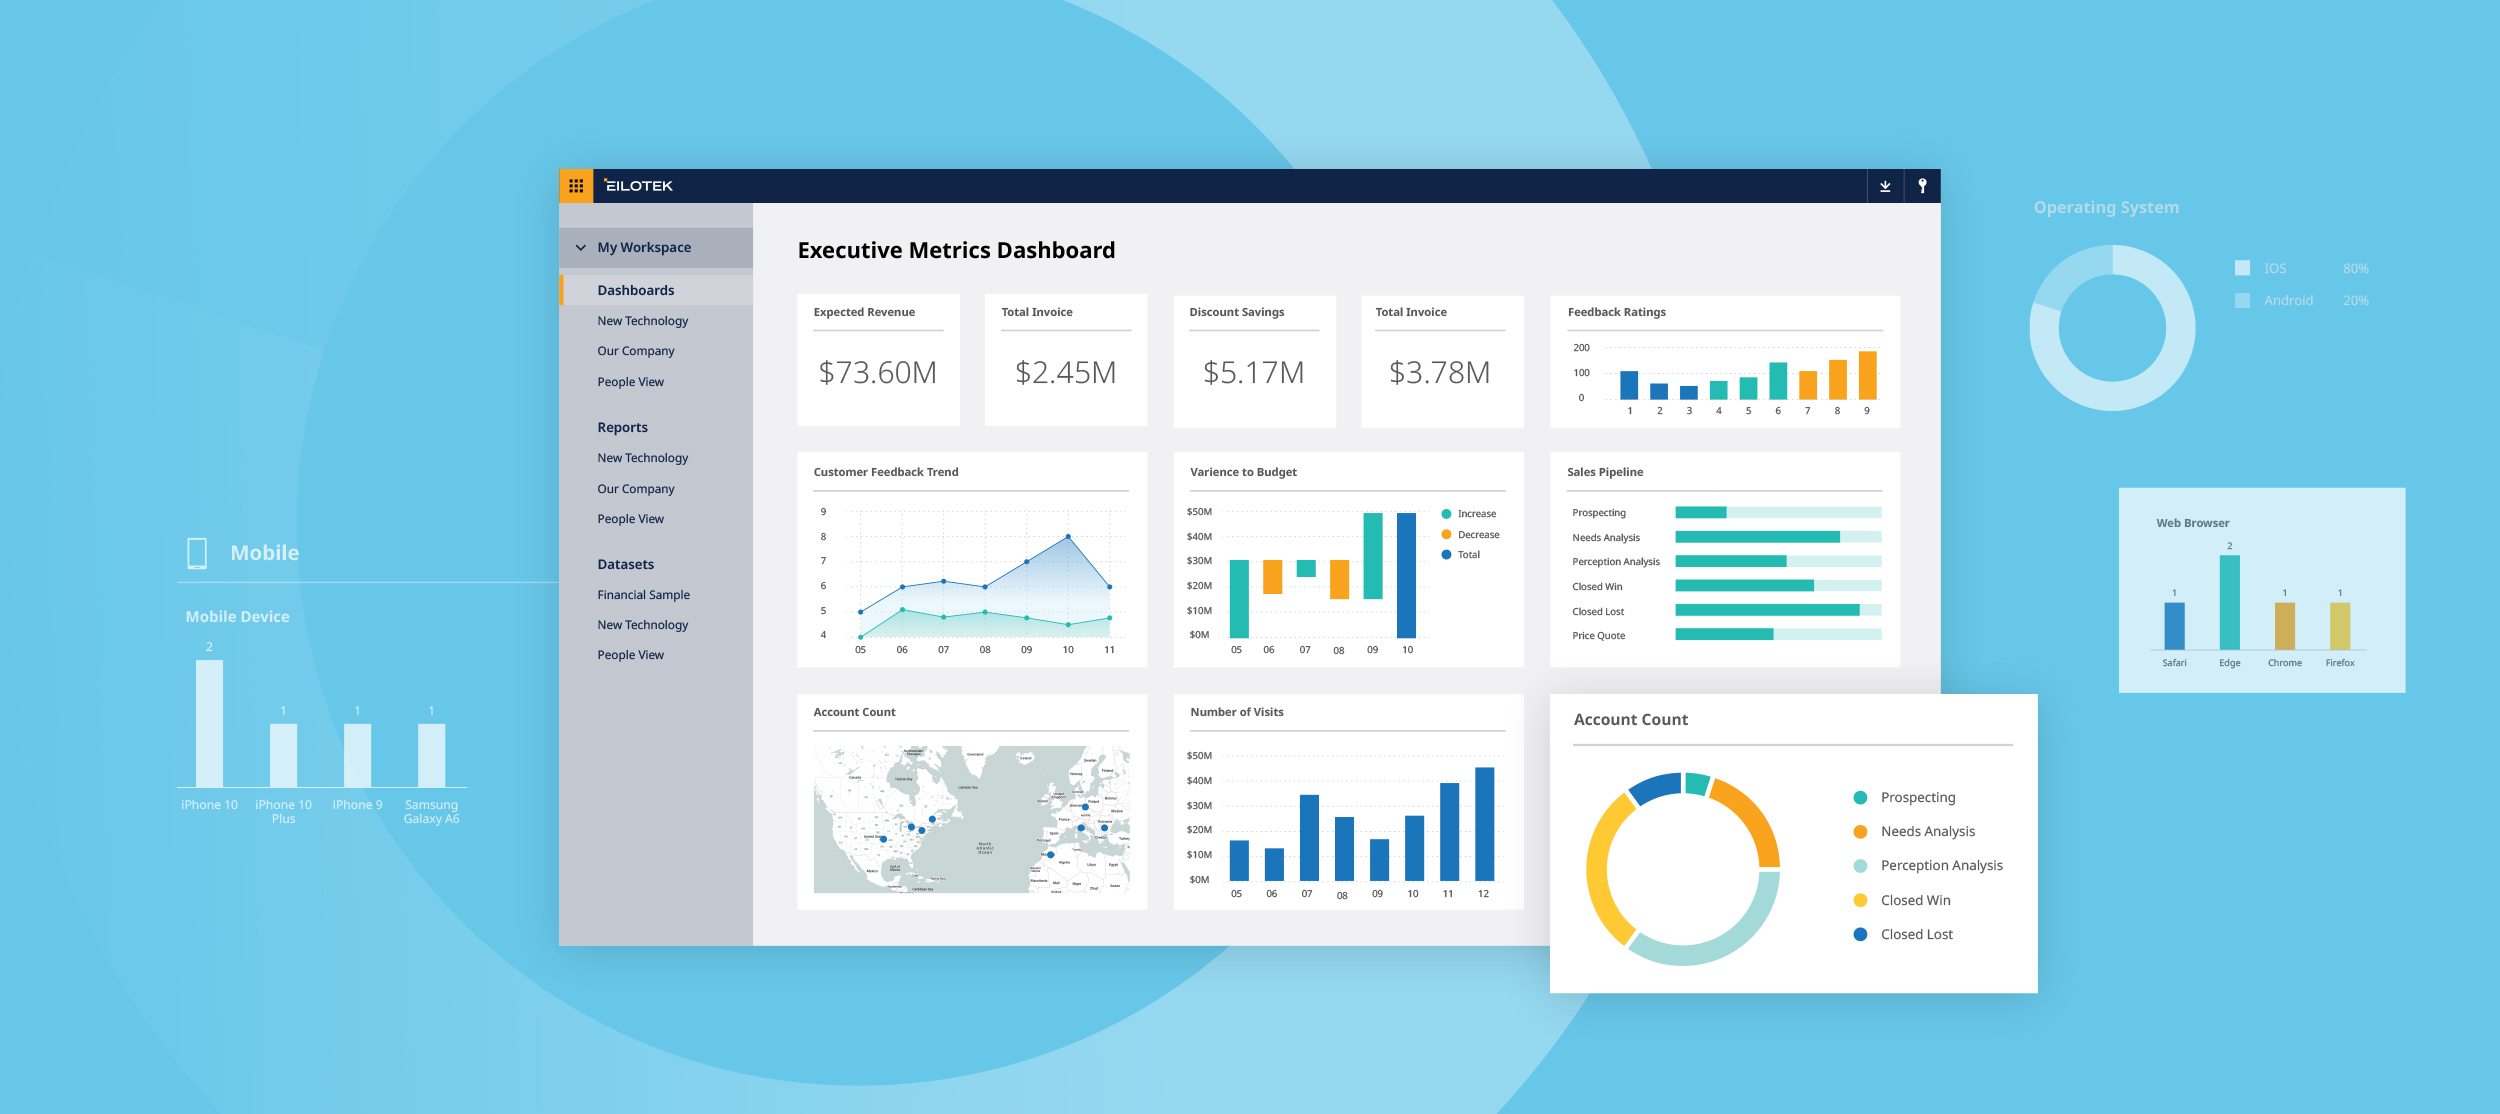 The digital experience platform dashboard allows the user to see metrics from all digital touch points in once place.